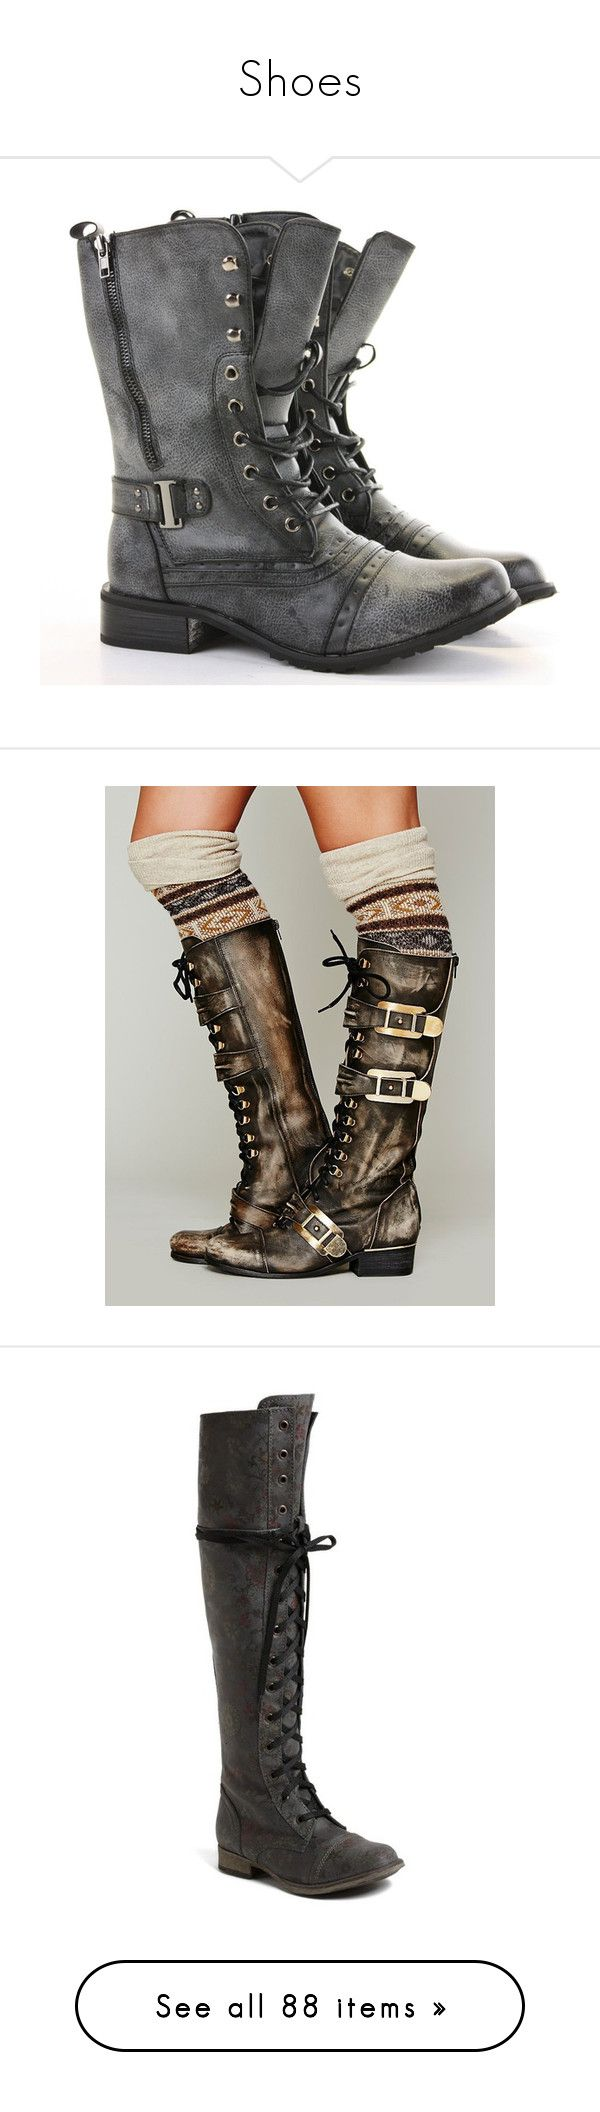 """""""Shoes"""" by shelbykins-blu ❤ liked on Polyvore featuring shoes, boots, ankle booties, footwear, botas, punk combat boots, ankle combat boots, military combat boots, flat ankle boots and short boots"""